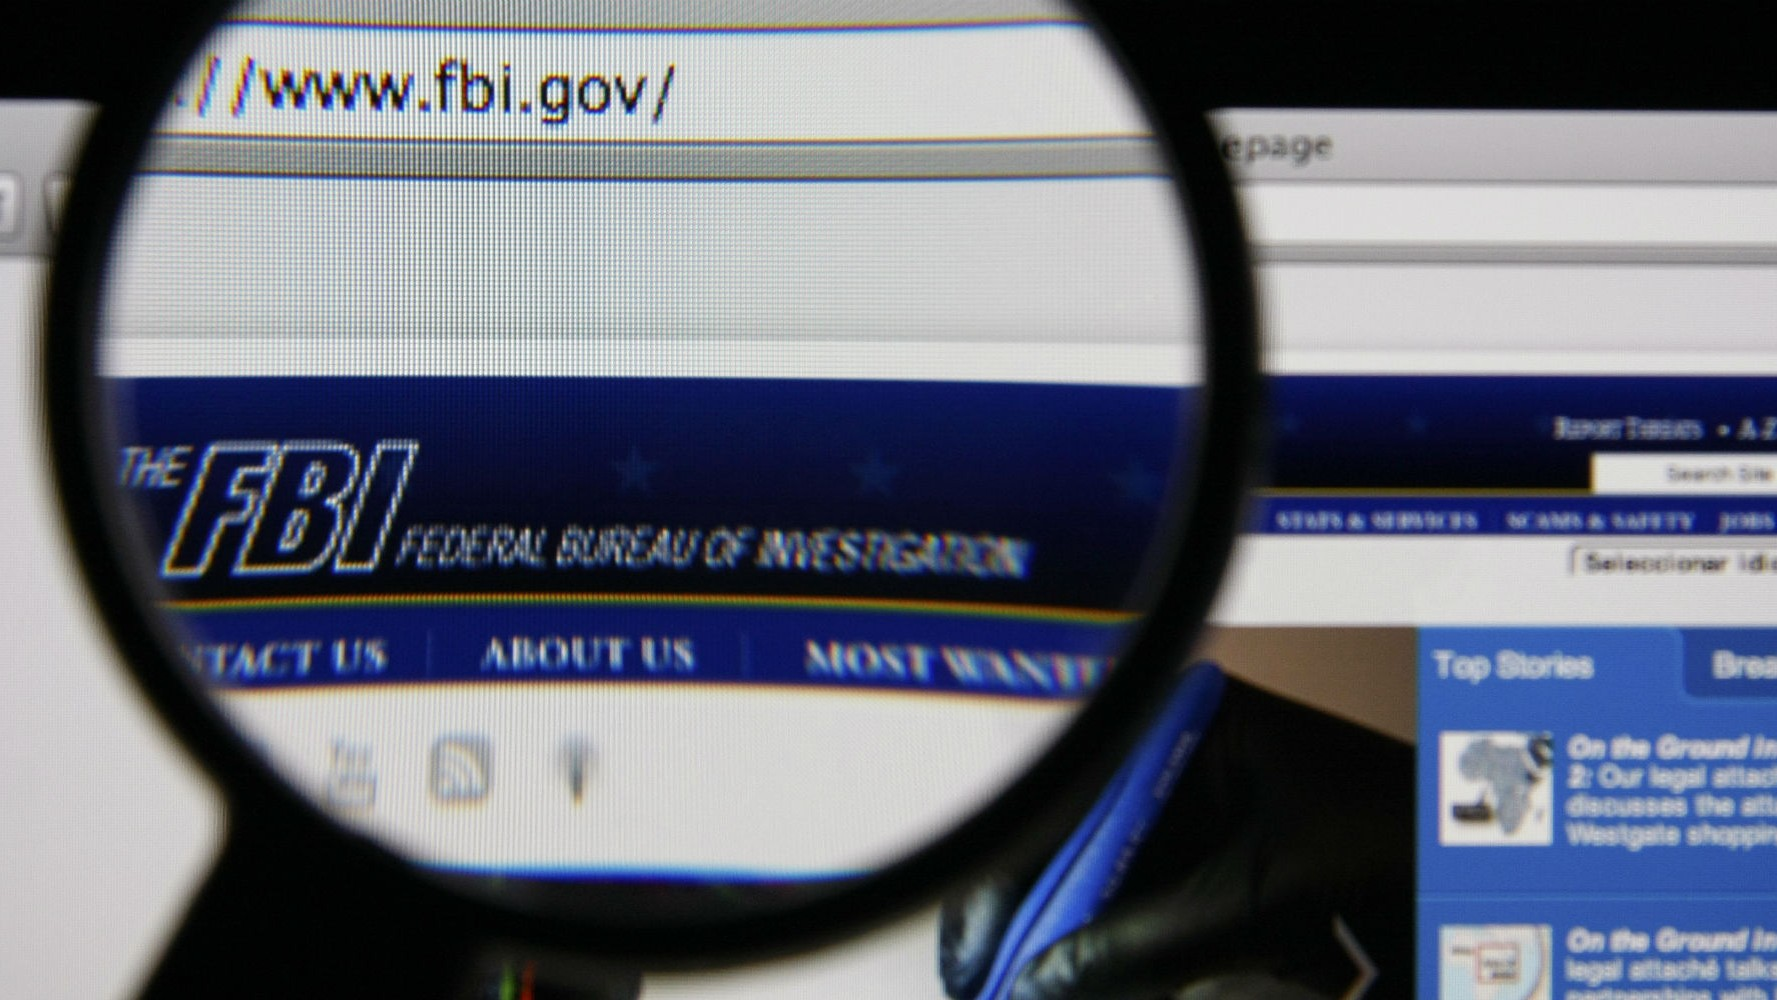 Hacker Publishes Personal Info of 20,000 FBI Agents